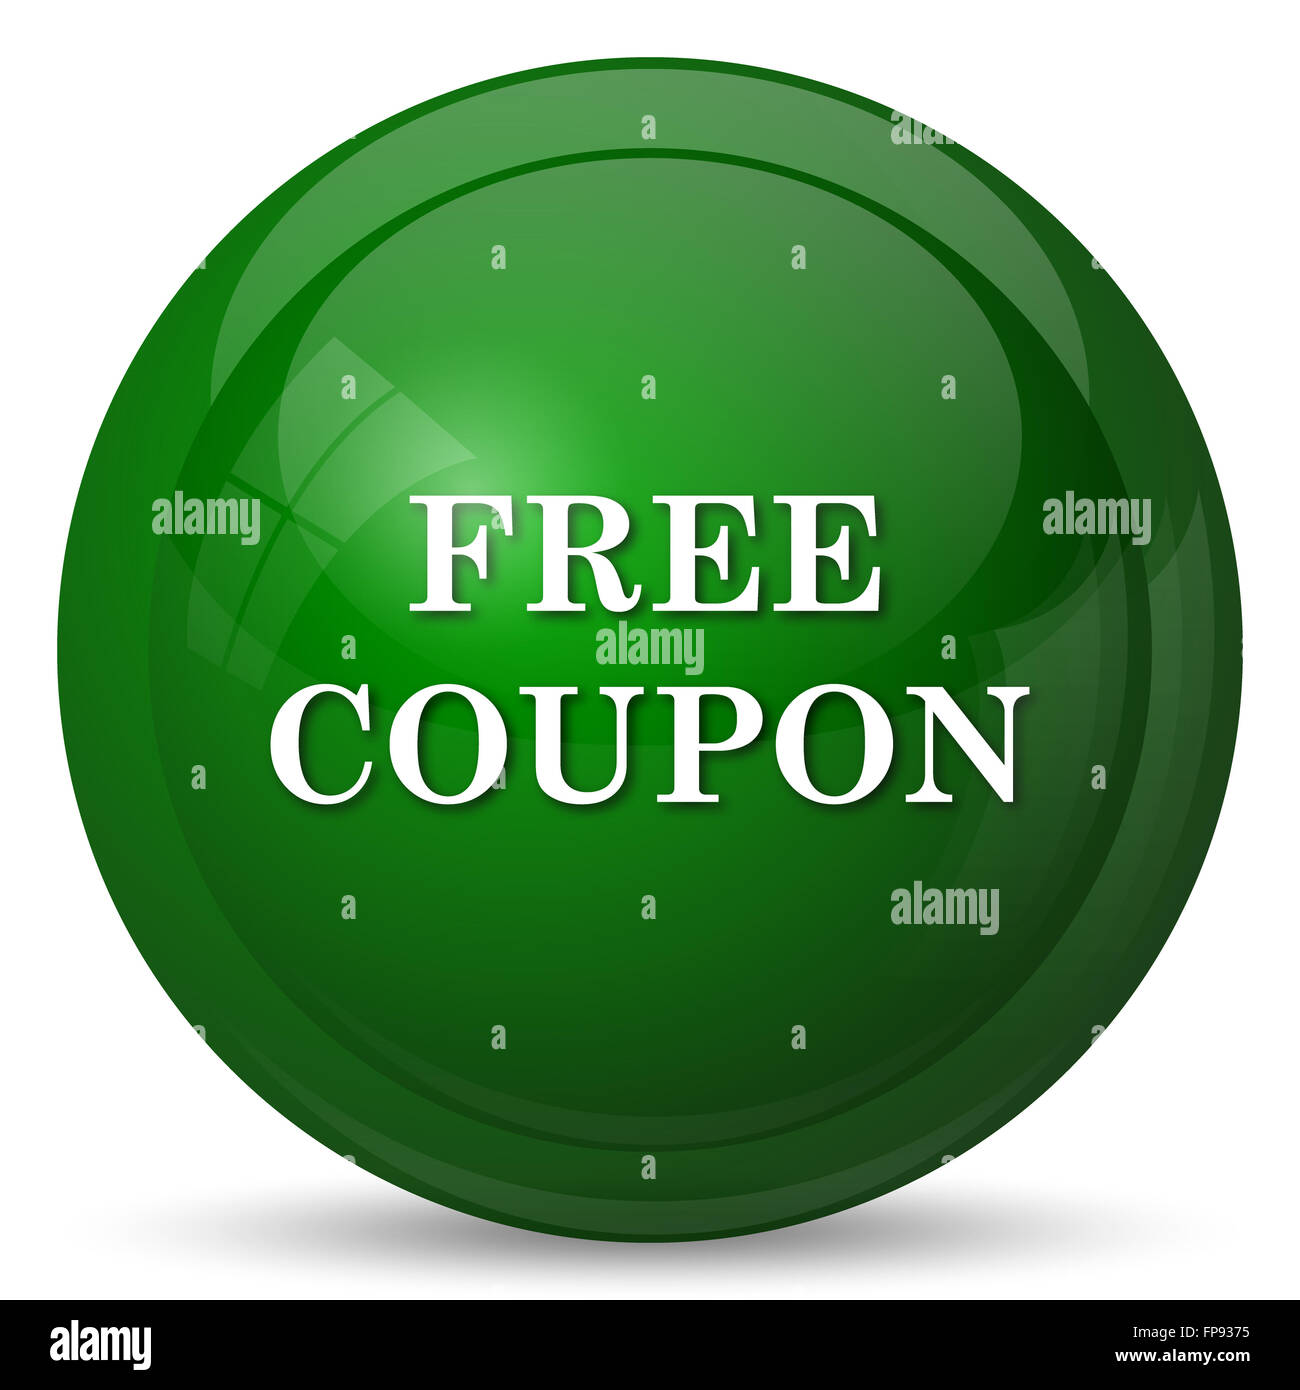 Free Coupon Icon Internet Button Stockfotos & Free Coupon Icon ...